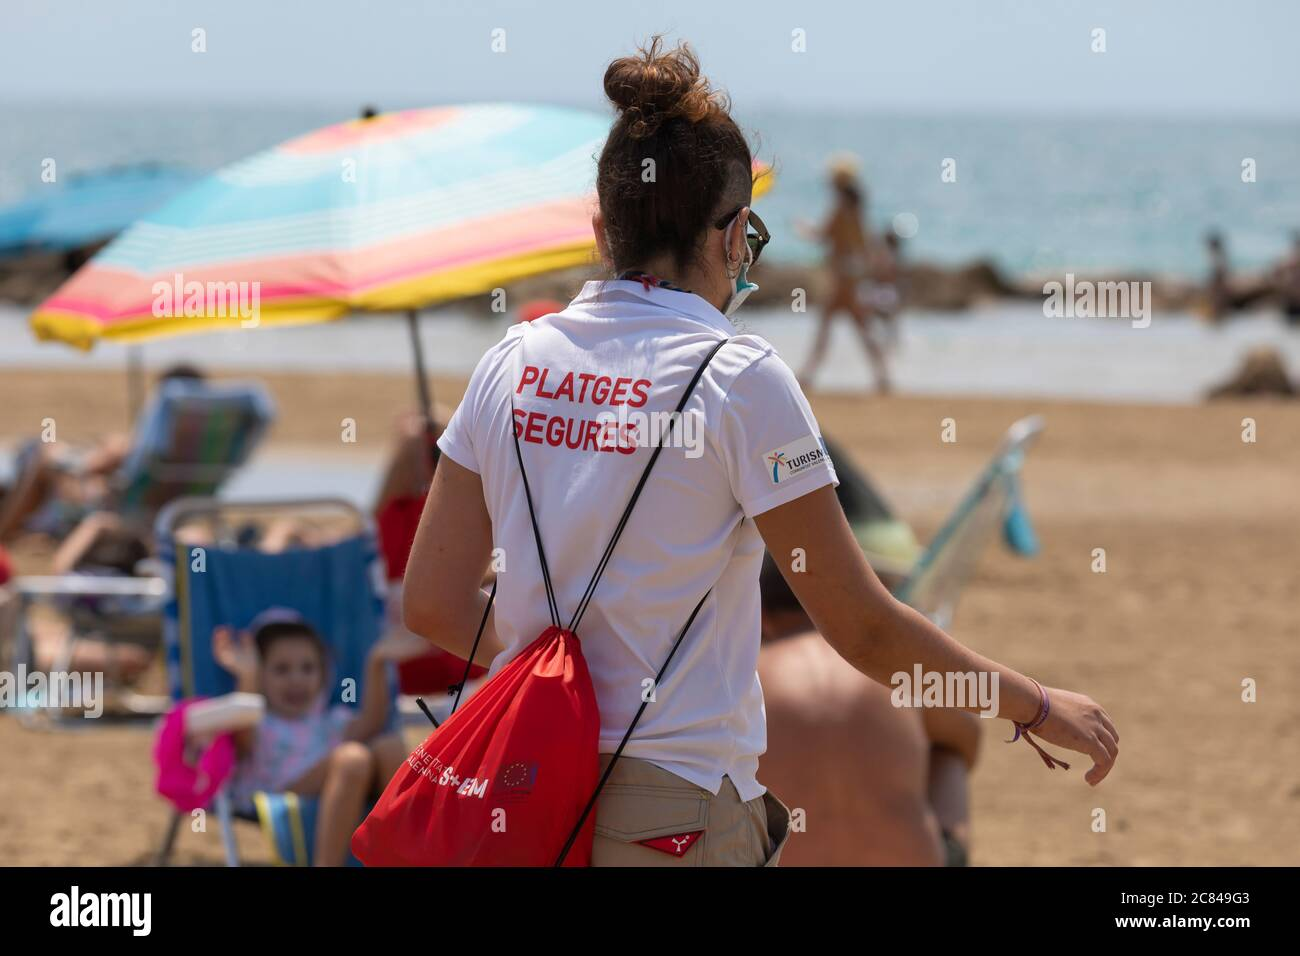 Torrenostra, Castellon, Spain - July 16, 2020: Beach assistants and attendants, work on the beach informing to help beachgoers to prevent coronavirus. Stock Photo